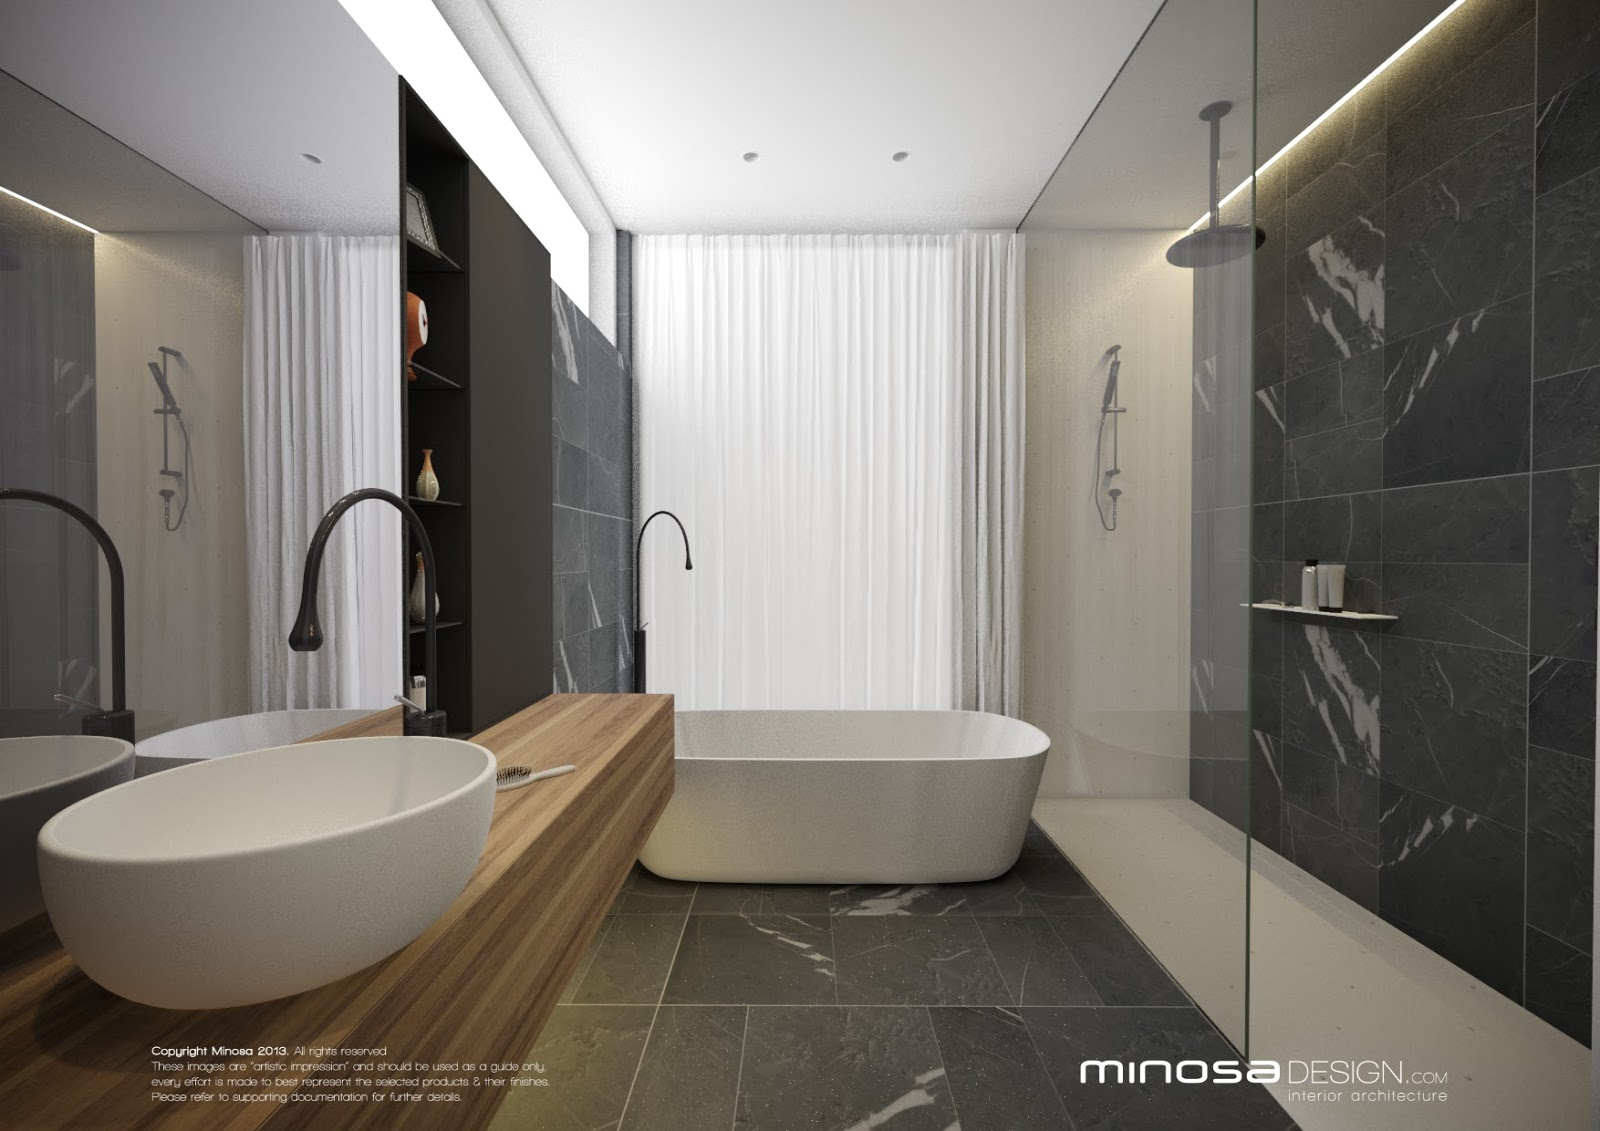 Designs For Small Bathrooms With A Shower Minosa Modern Bathroom Design To Share